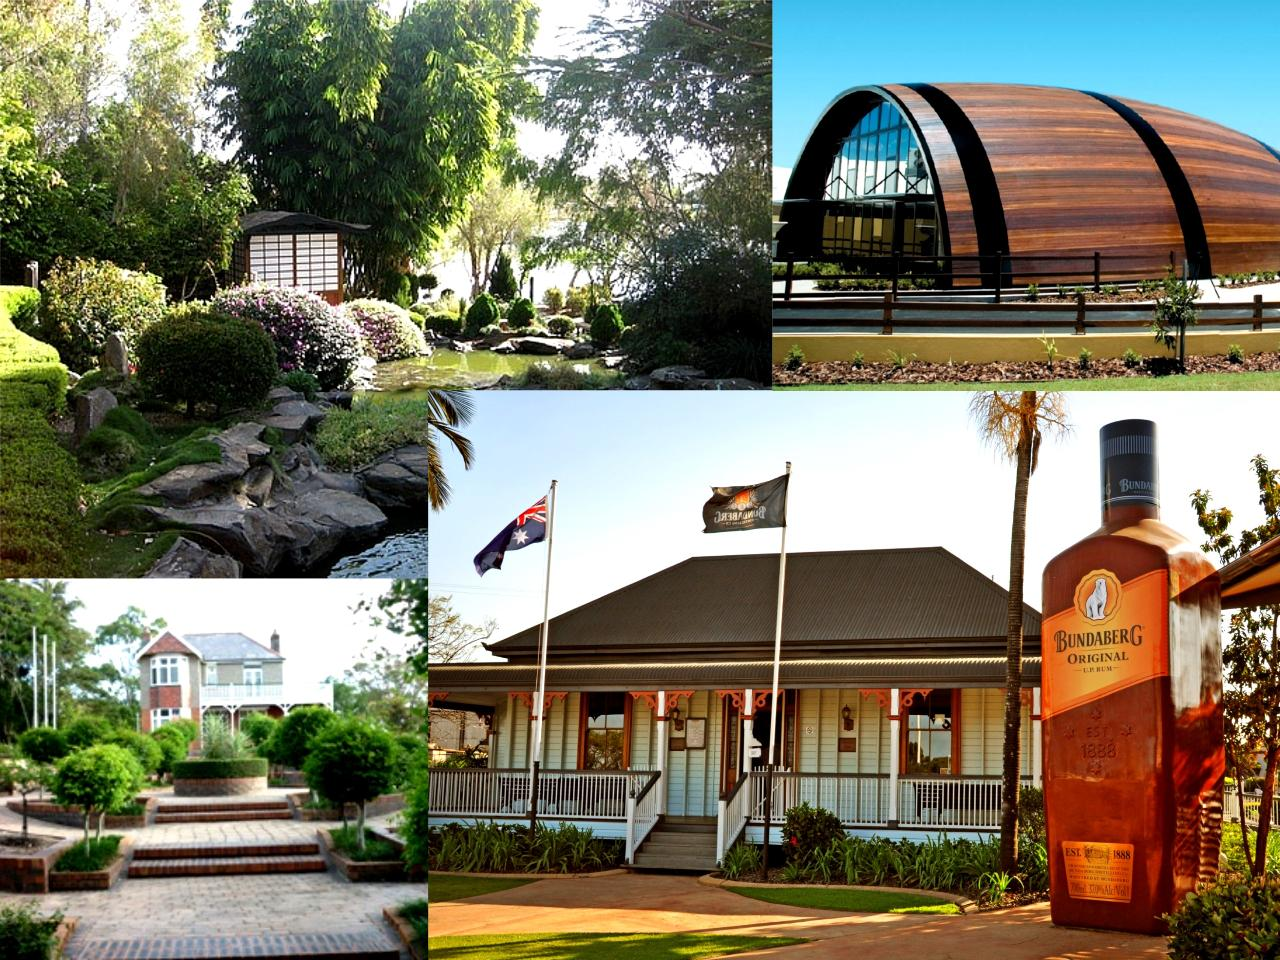 Bundaberg Full Day - Botanic Gardens, Bundaberg Barrel & Bundaberg Rum (+ BONUS Hinkler Hall of Aviation Entry) RALLY DEAL